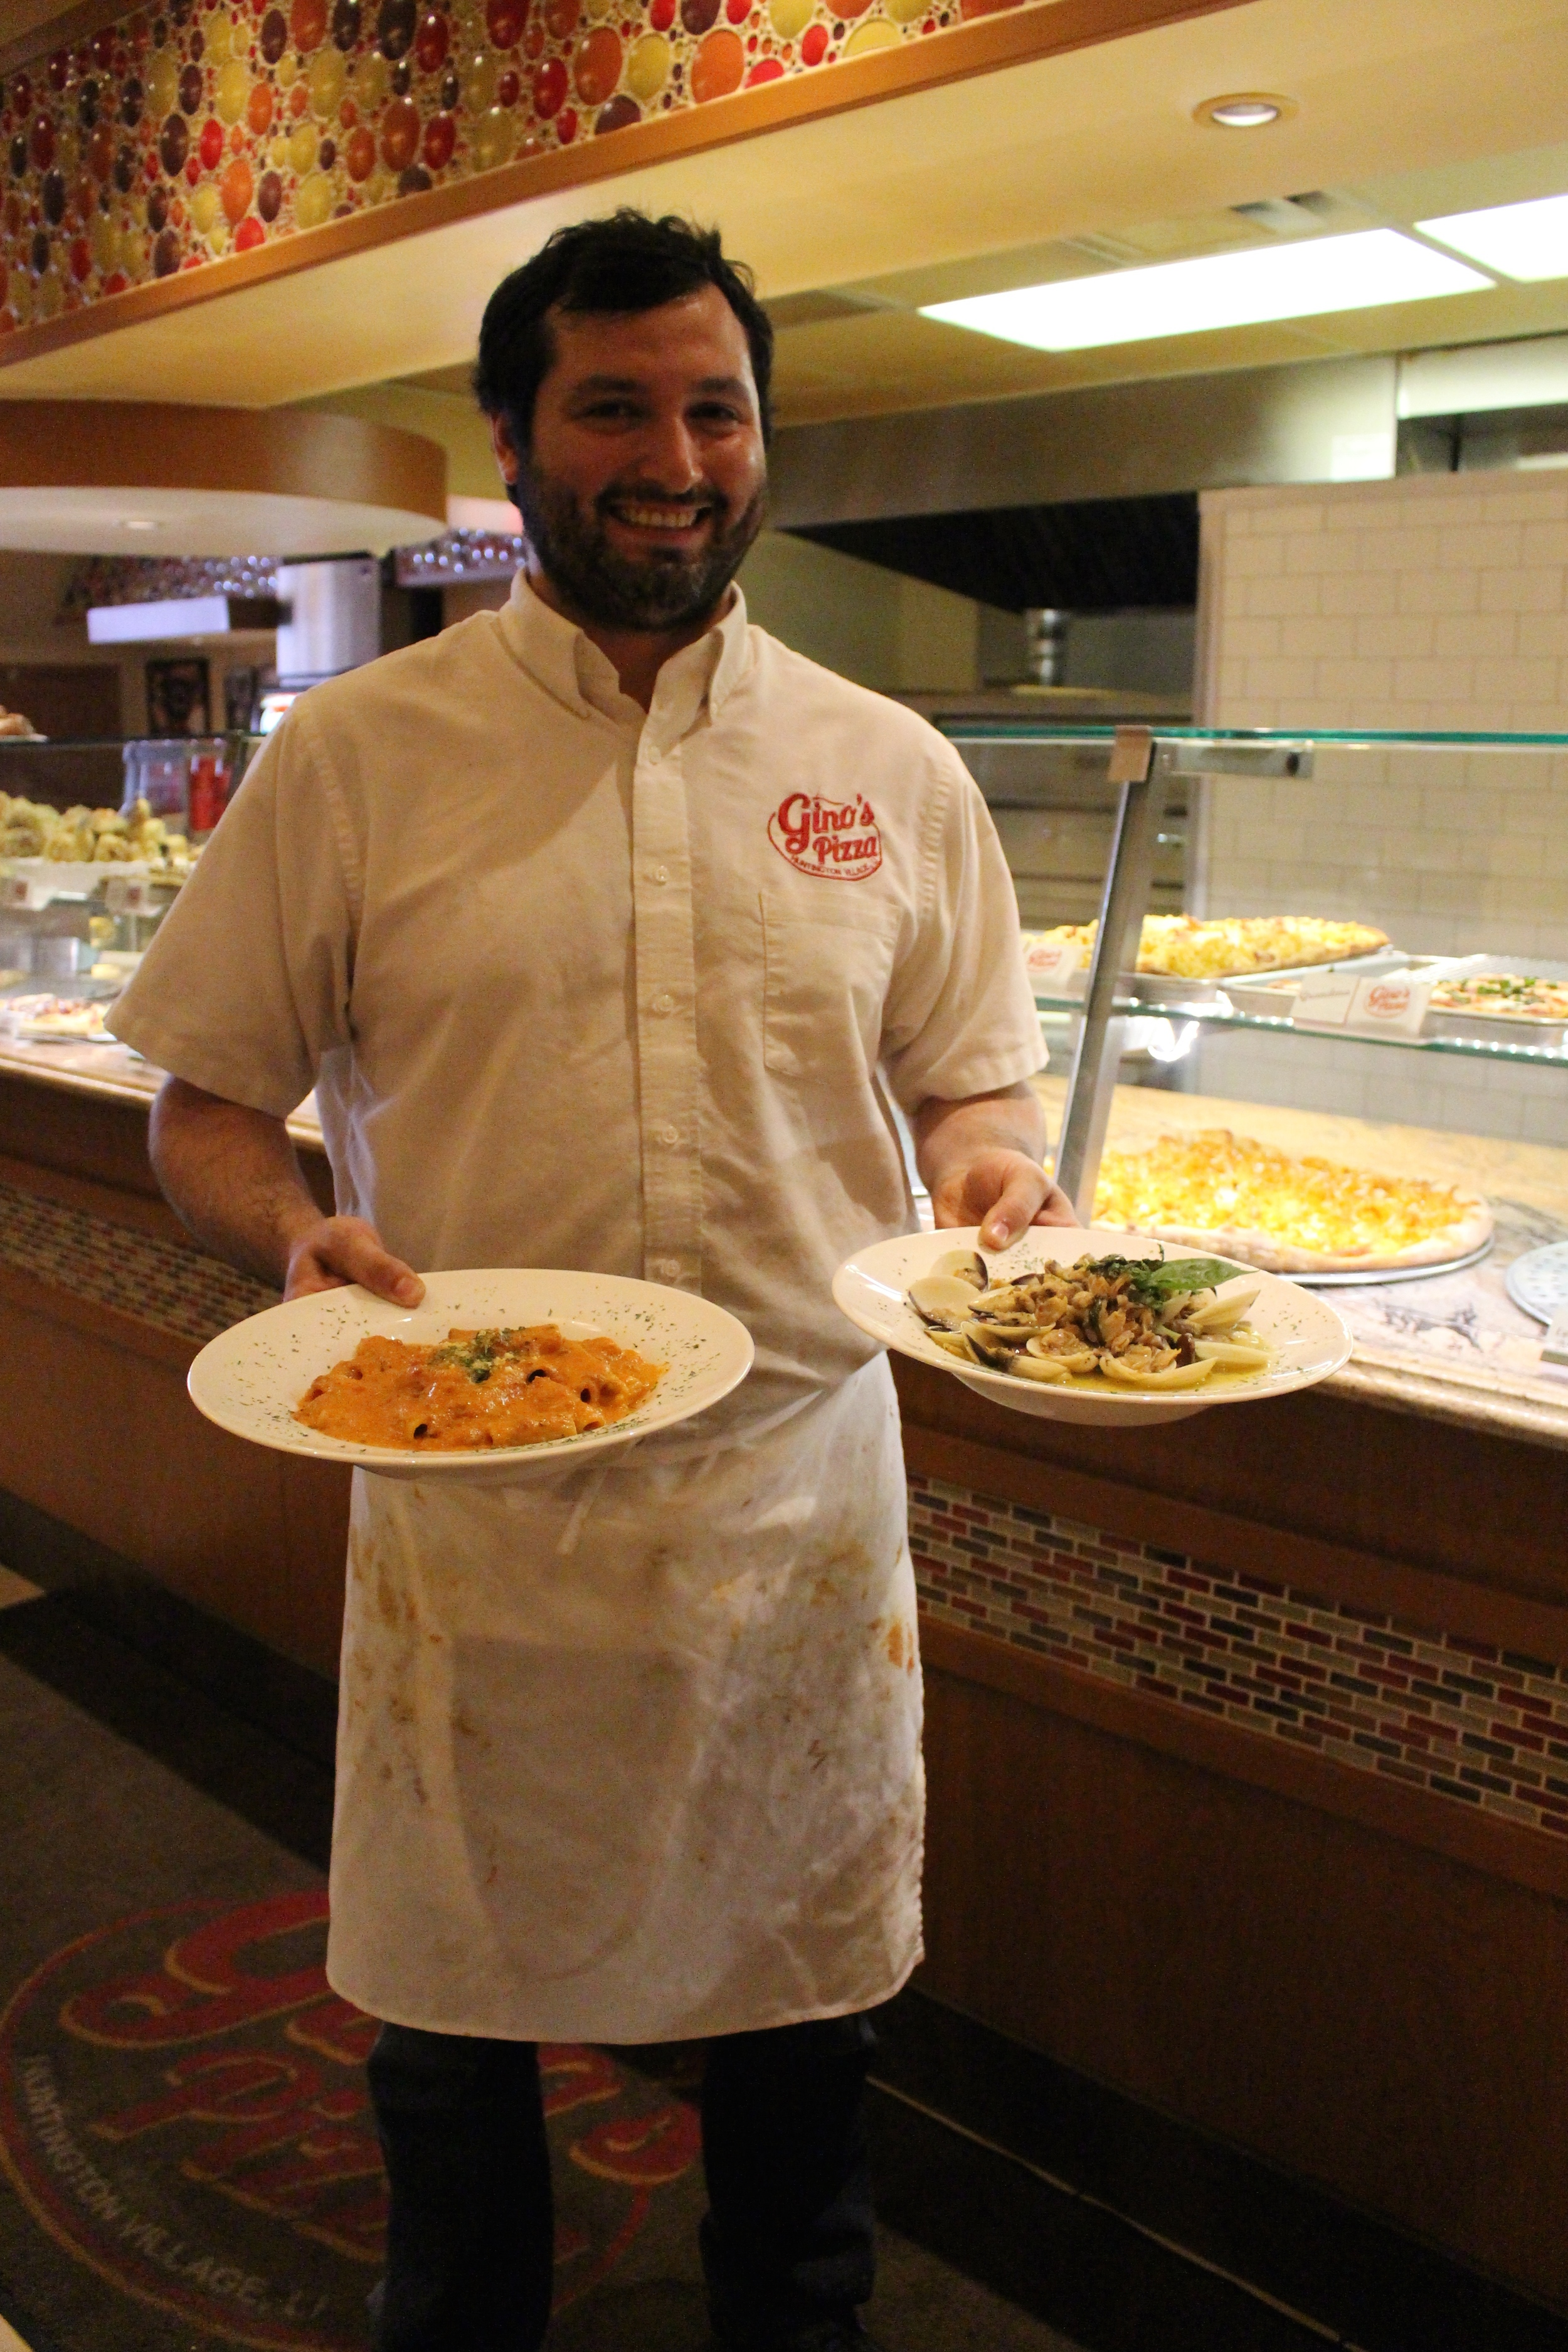 Nick Salerno, owner of Gino's Pizzeria in Huntington village, serves up rigatoni Bolognese with red wine sauce and linguini in white clam sauce.